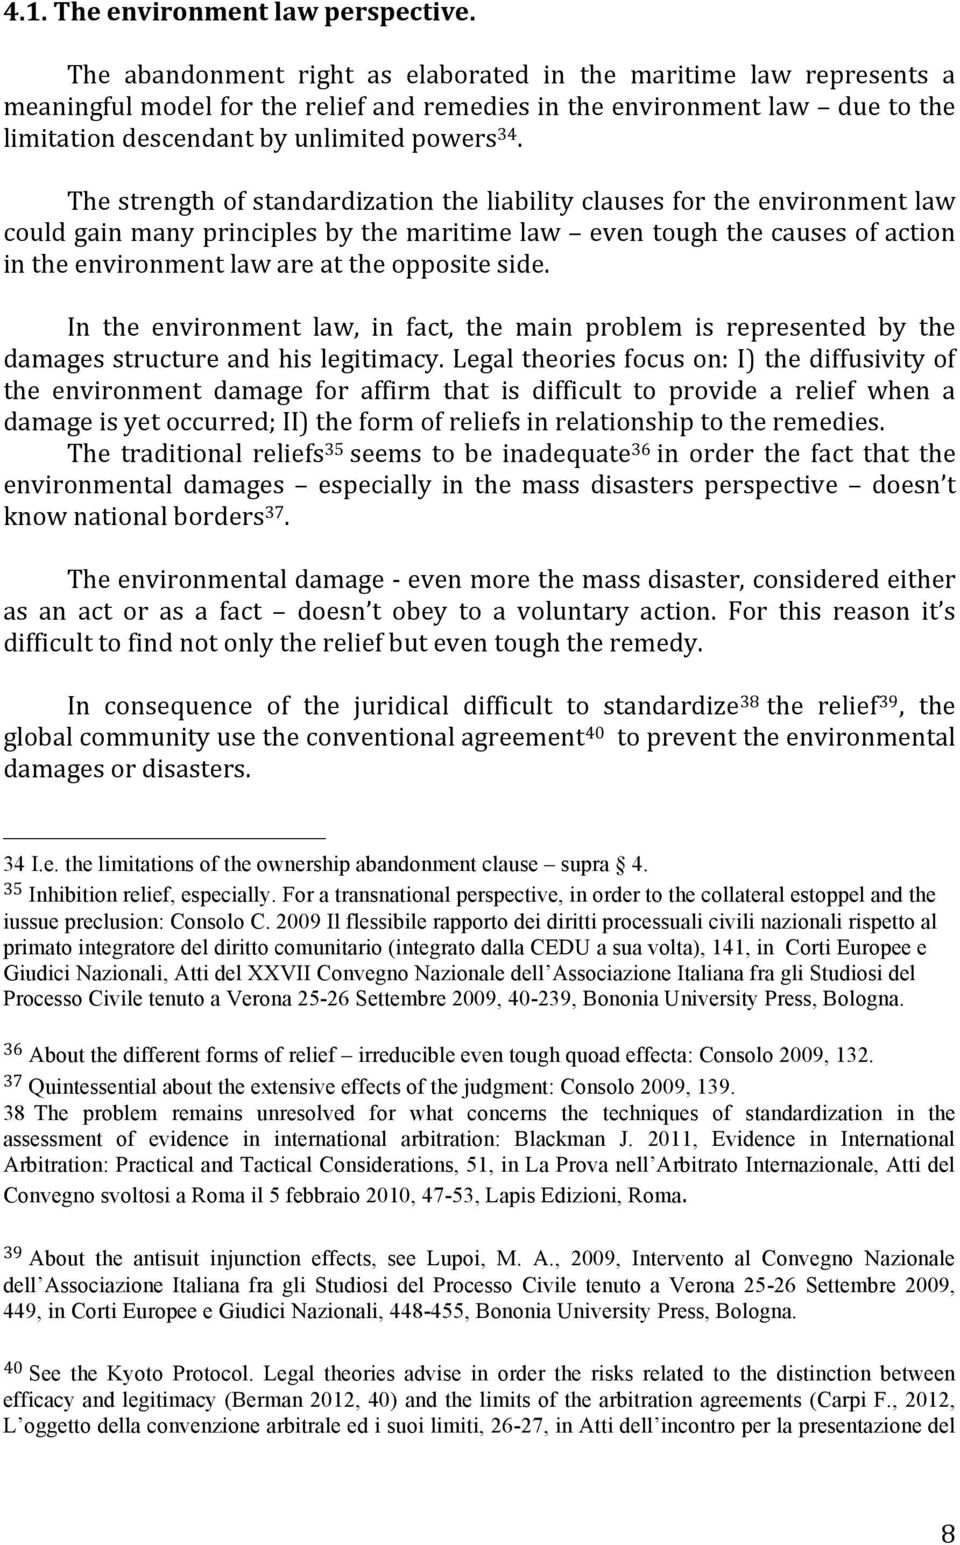 The strength of standardization the liability clauses for the environment law could gain many principles by the maritime law even tough the causes of action in the environment law are at the opposite